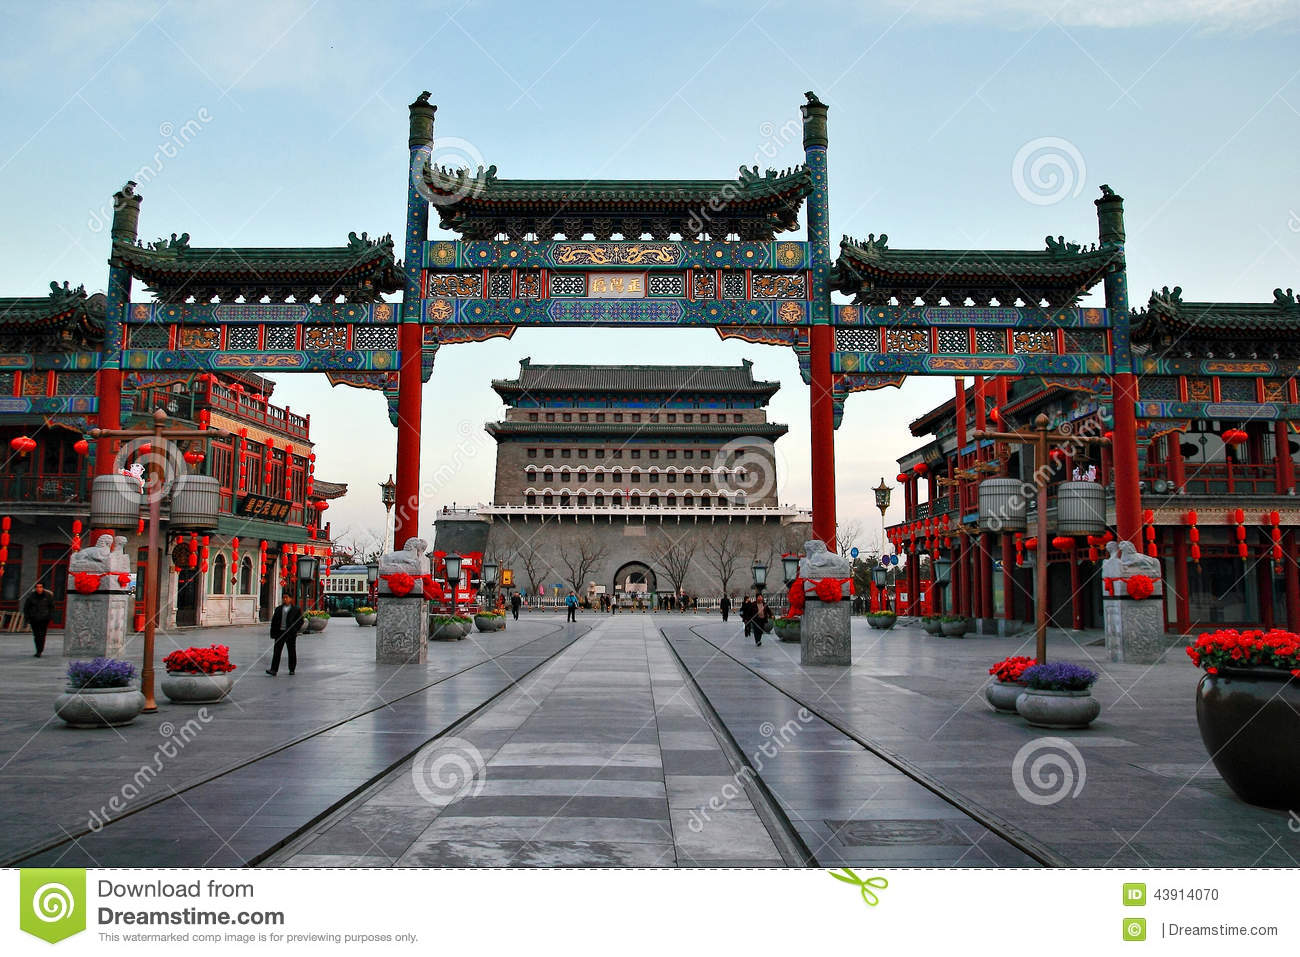 Old city in china stock photo. Image of beautiful ...